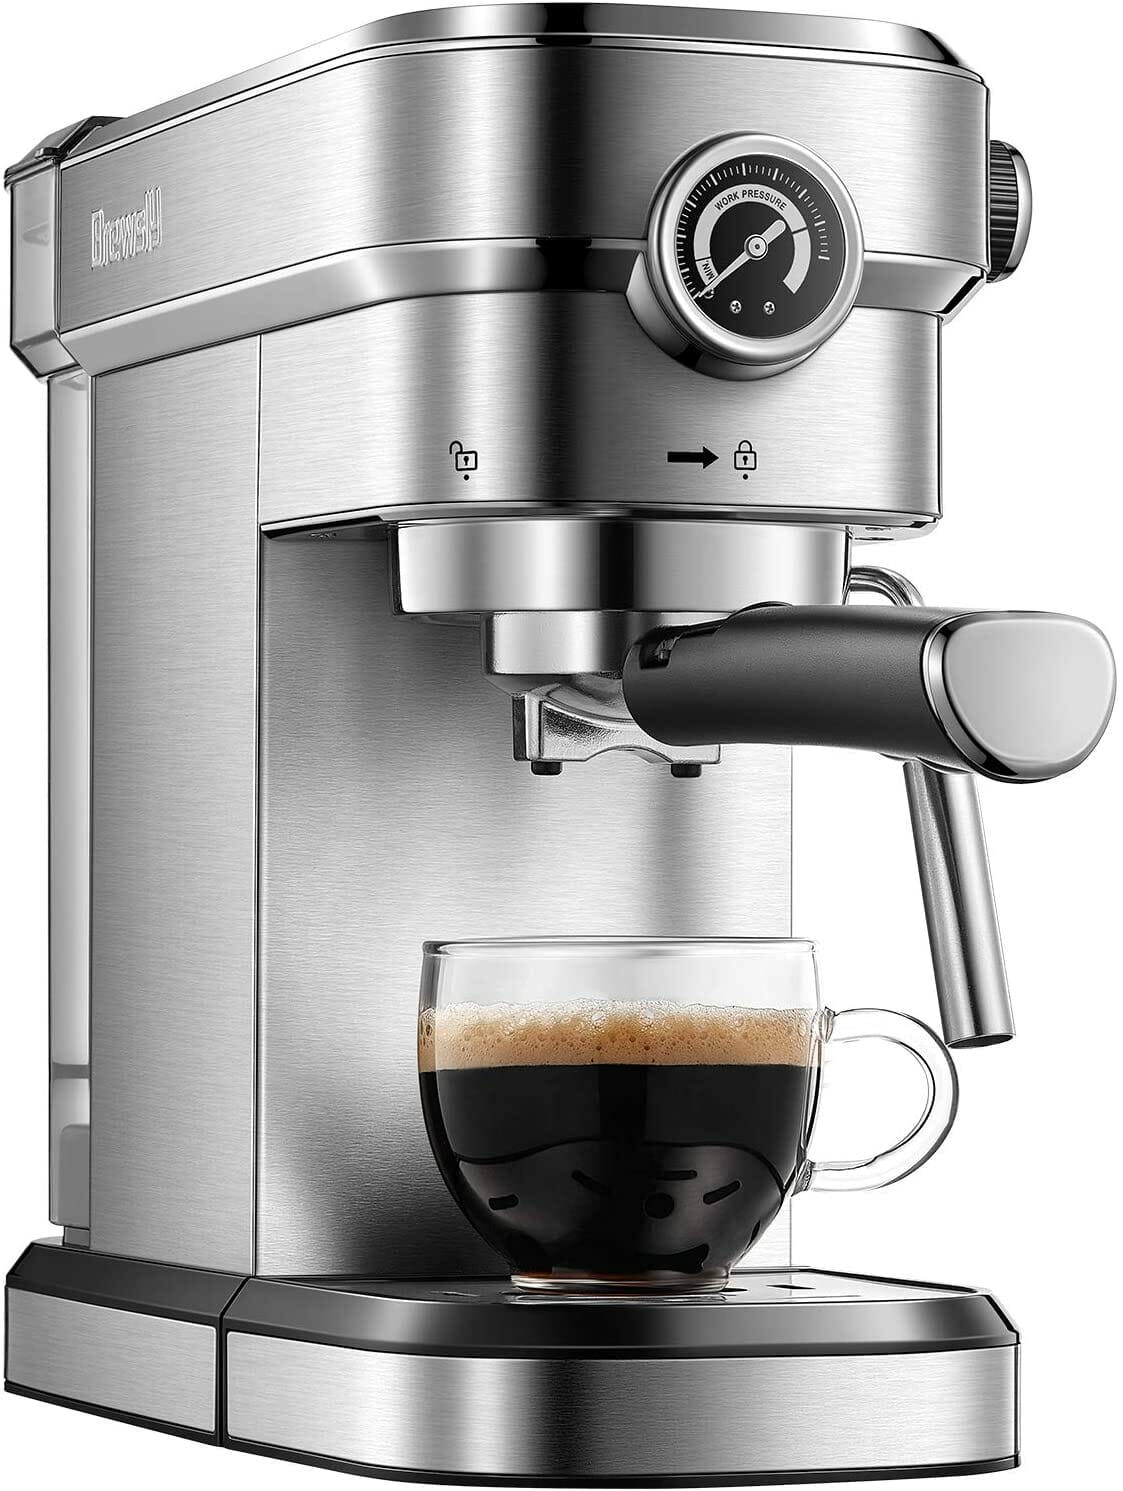 machine with espresso cup